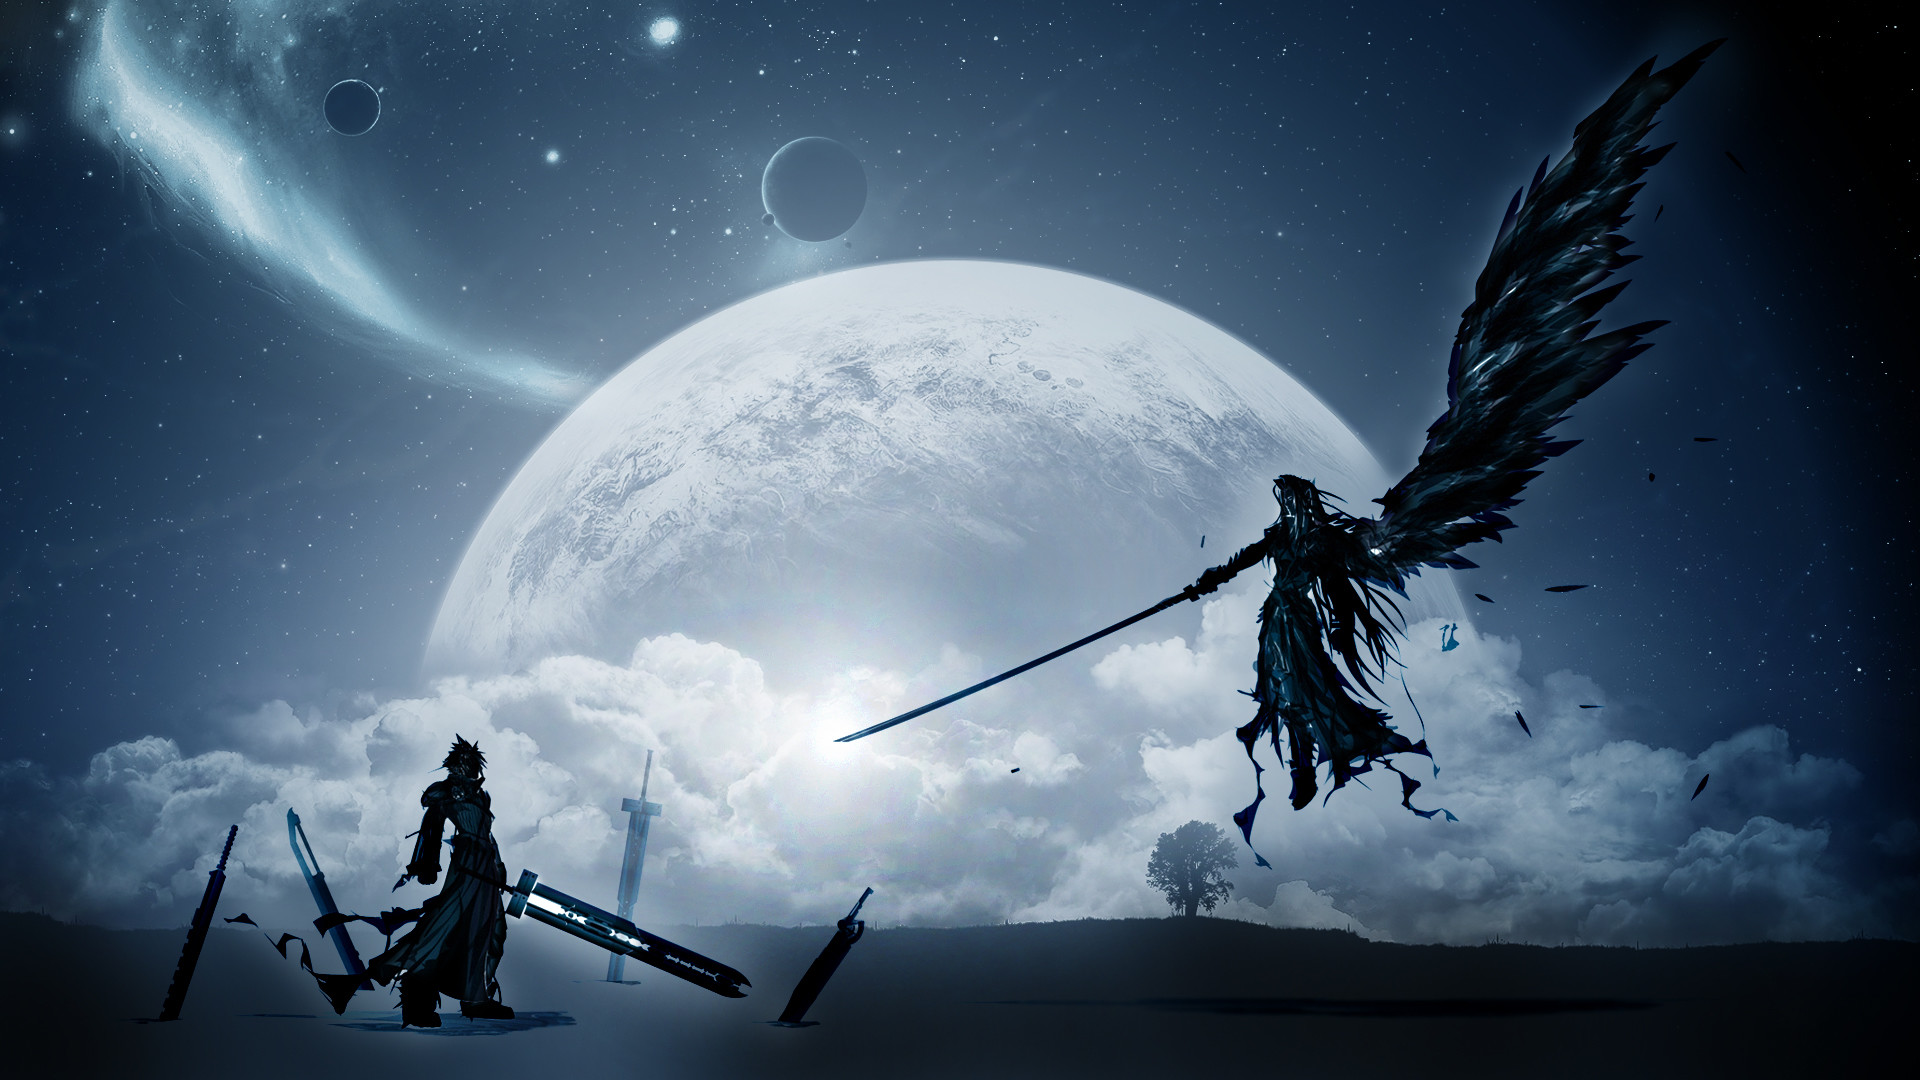 1920x1080 Filme - Final Fantasy VII: Advent Children Erde/Natur Fantasy Ff7 Wolke  Sephiroth (